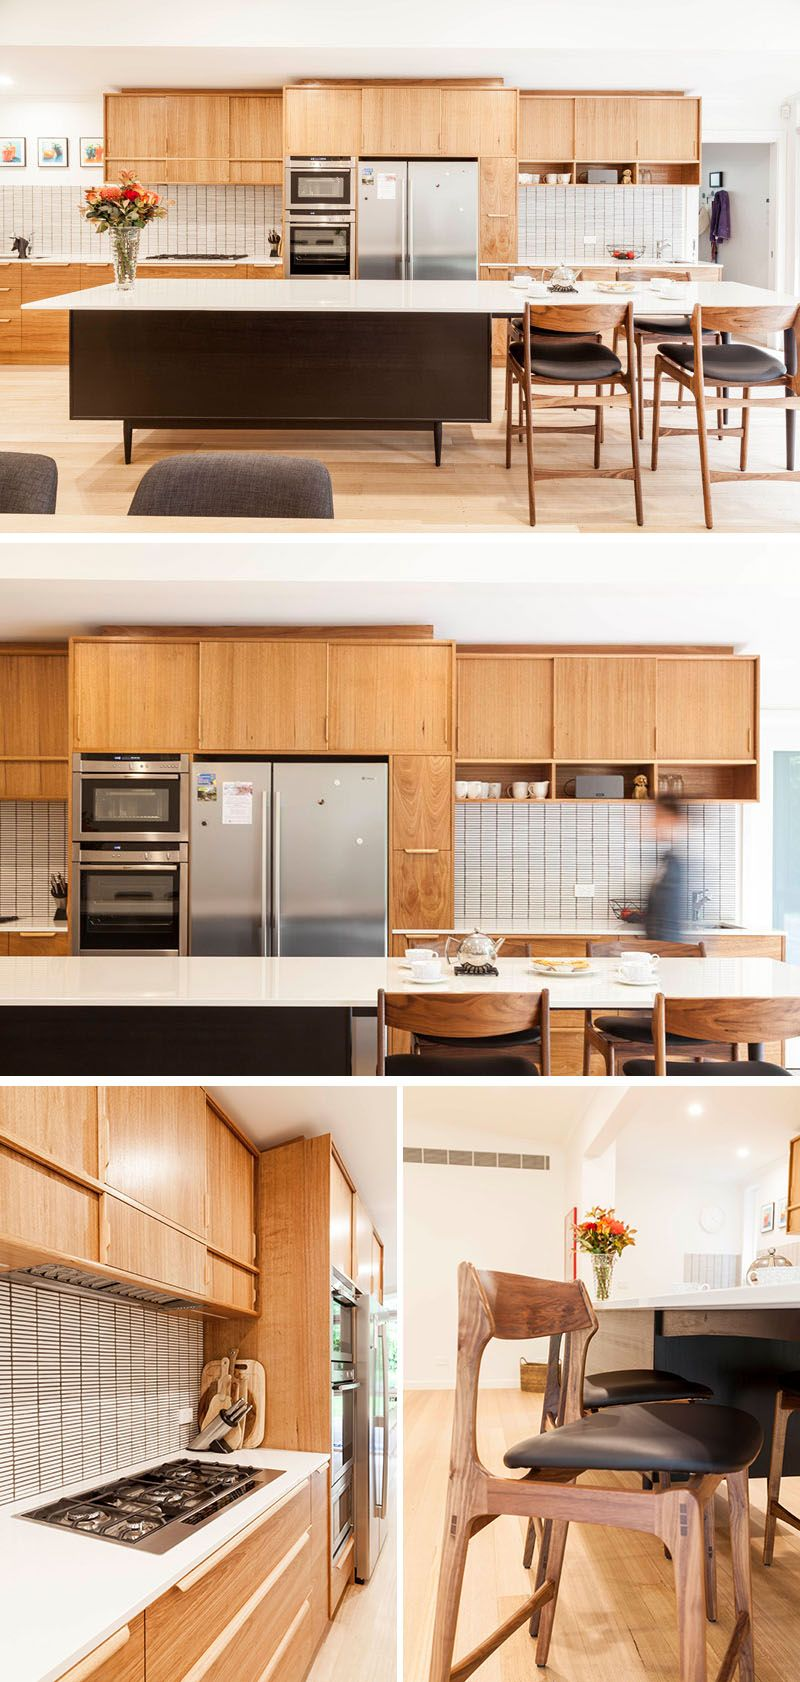 Detail 9 Architects Gave New Life To This Mid Century Modern House In Australia Modular Kitchen Cabinets Kitchen Renovation Modern Kitchen